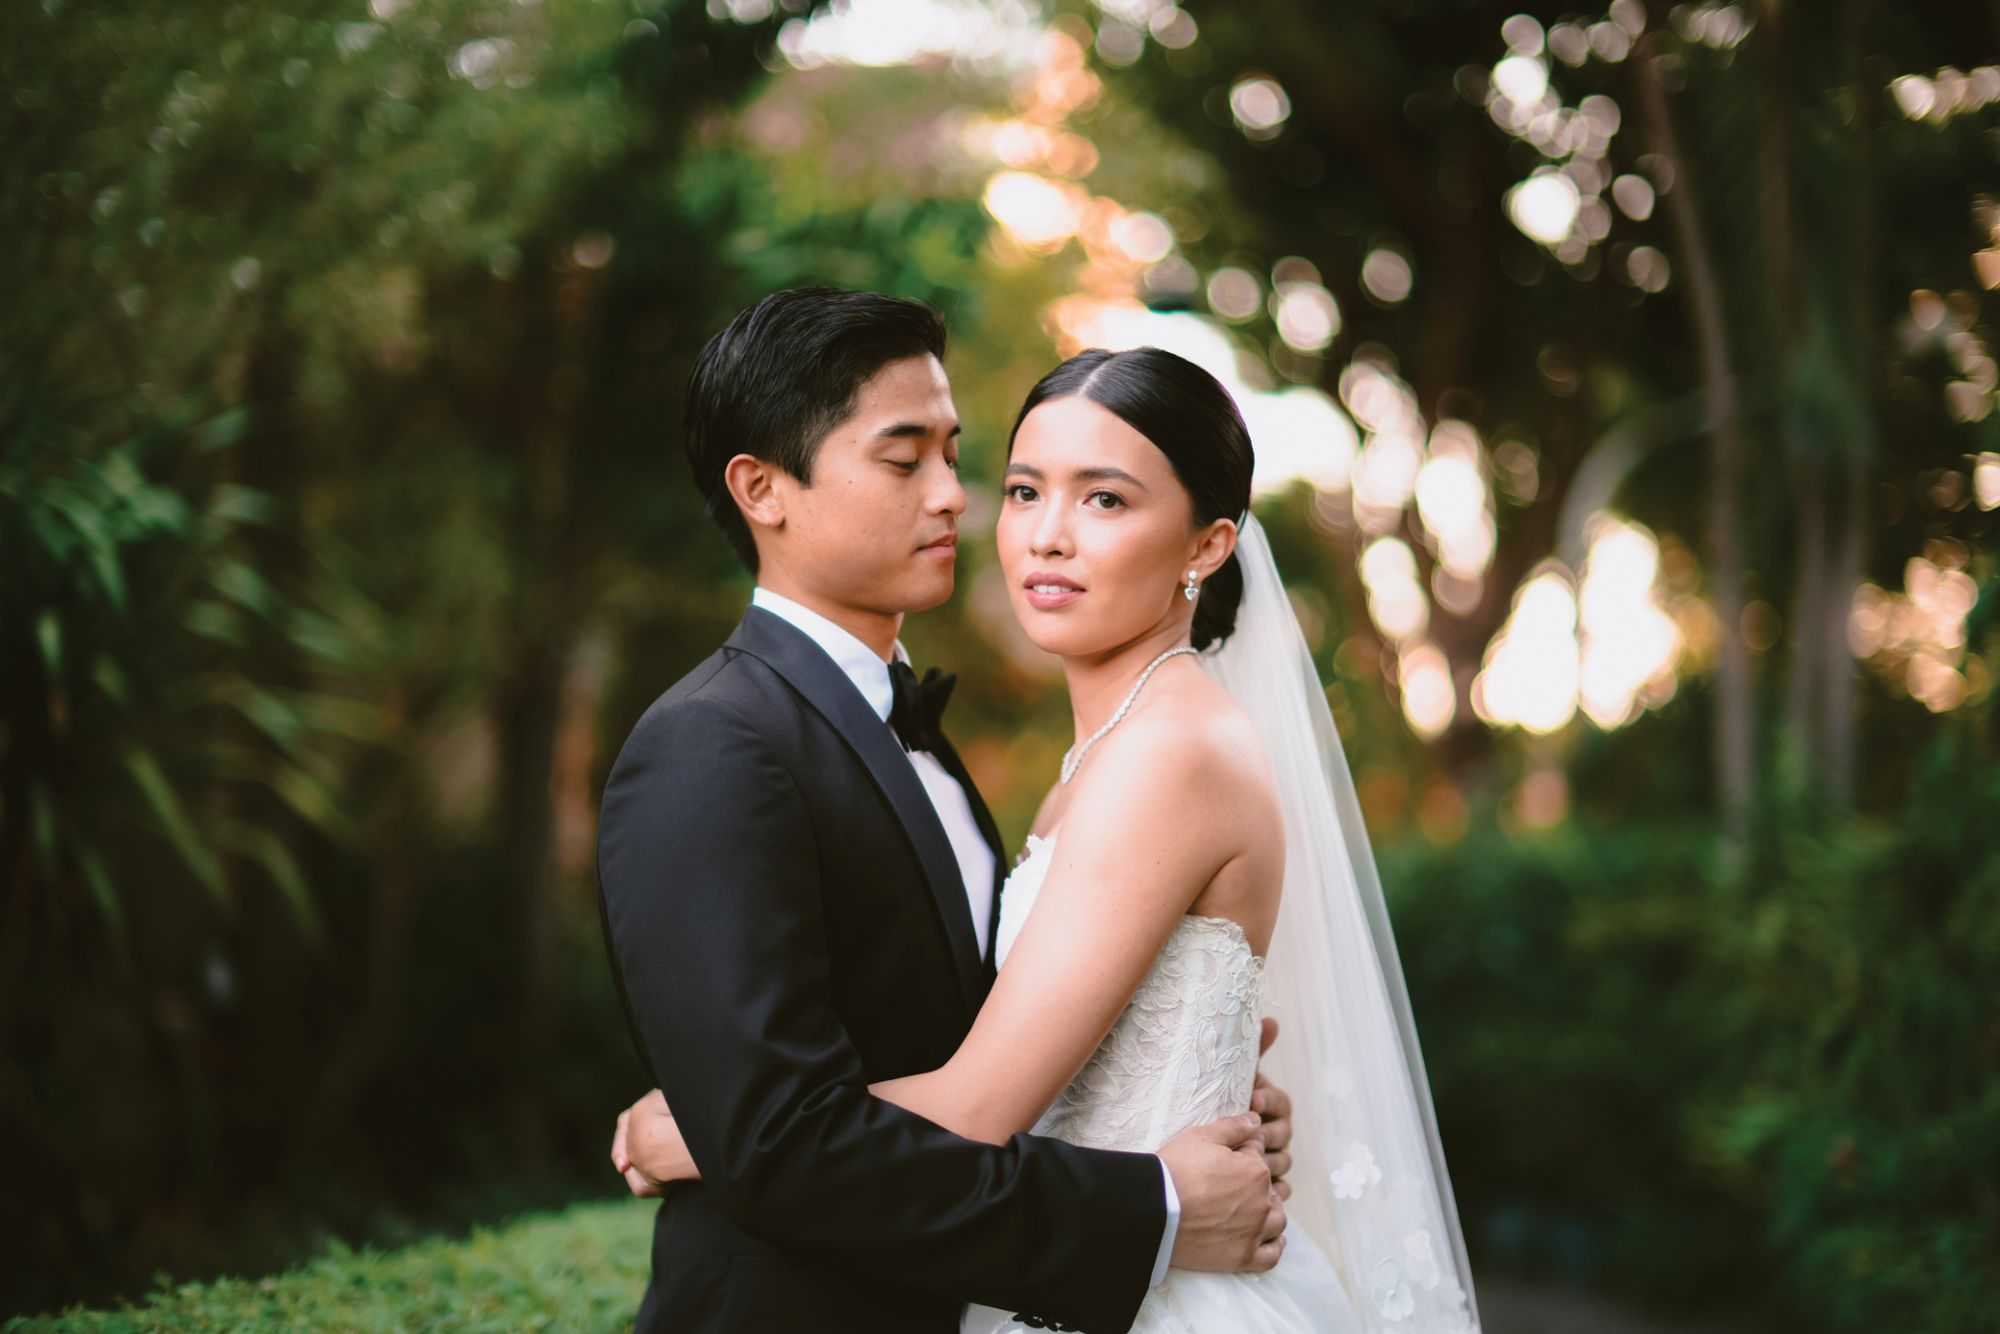 Catherine Concepcion & Javier Puno Tied The Knot After 9 years